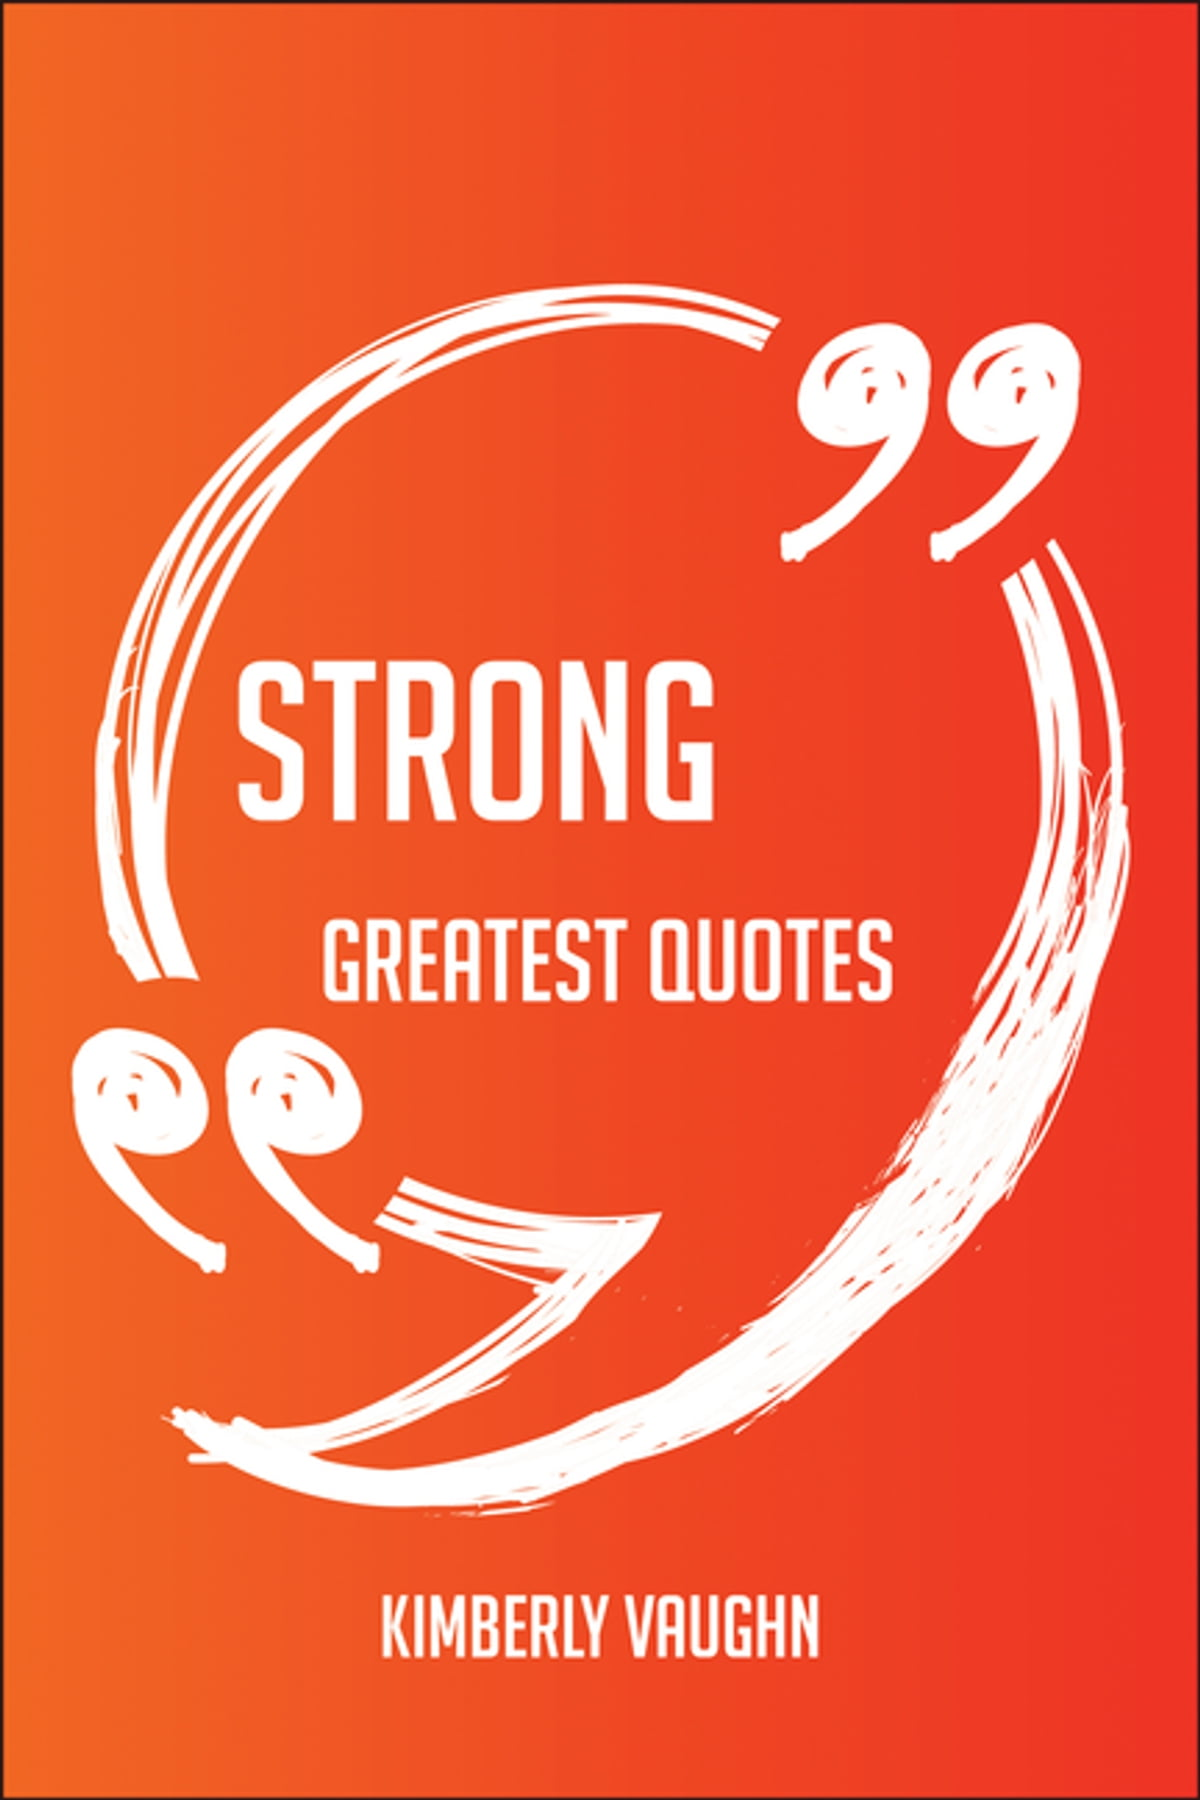 Strong Greatest Quotes - Quick, Short, Medium Or Long Quotes. Find The  Perfect Strong Quotations For All Occasions - Spicing Up Letters, Speeches,  And ...